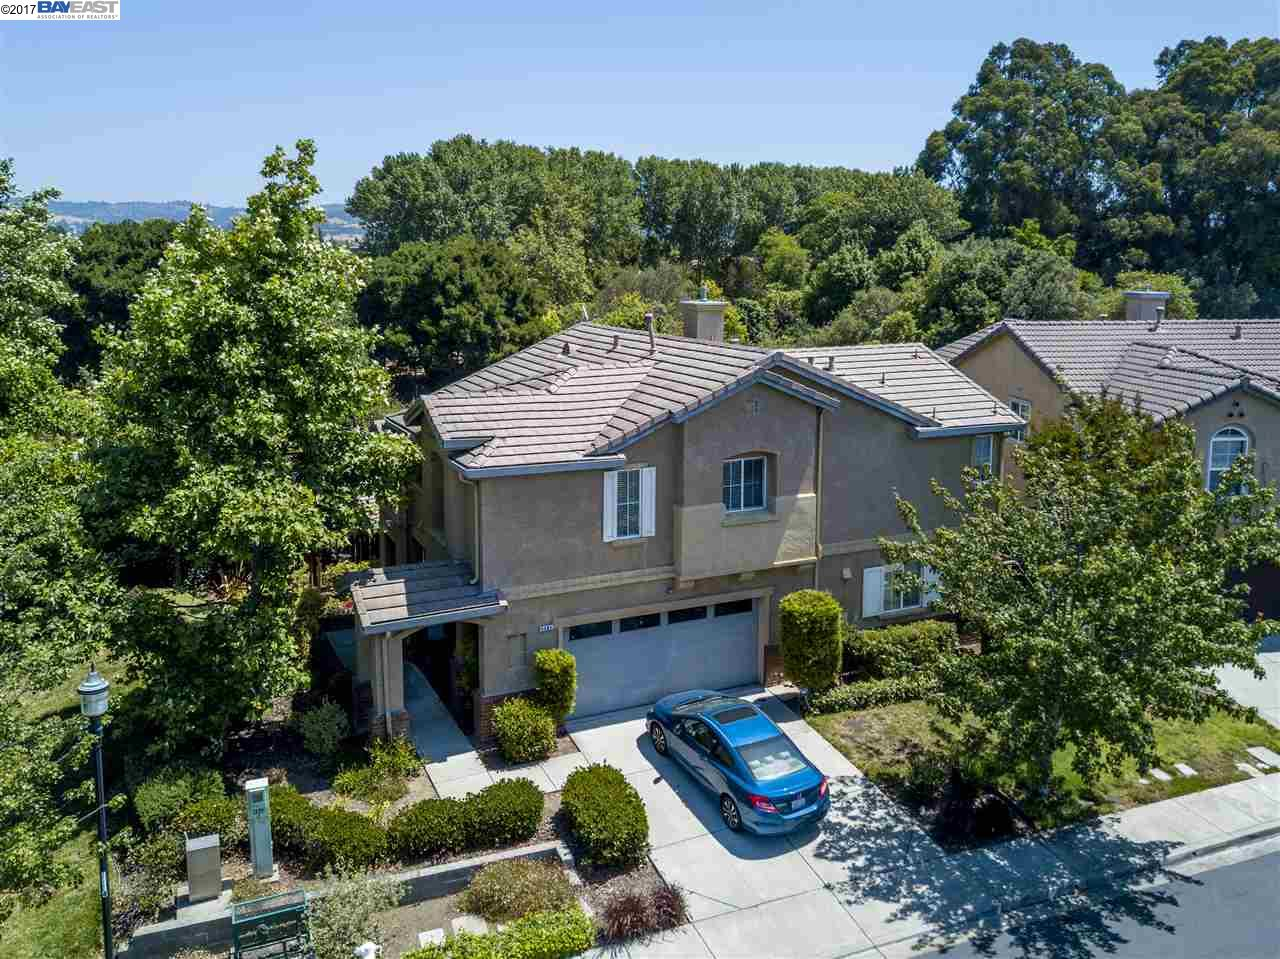 Additional photo for property listing at 1181 Alder Creek Circle  San Leandro, Kalifornien 94577 Vereinigte Staaten